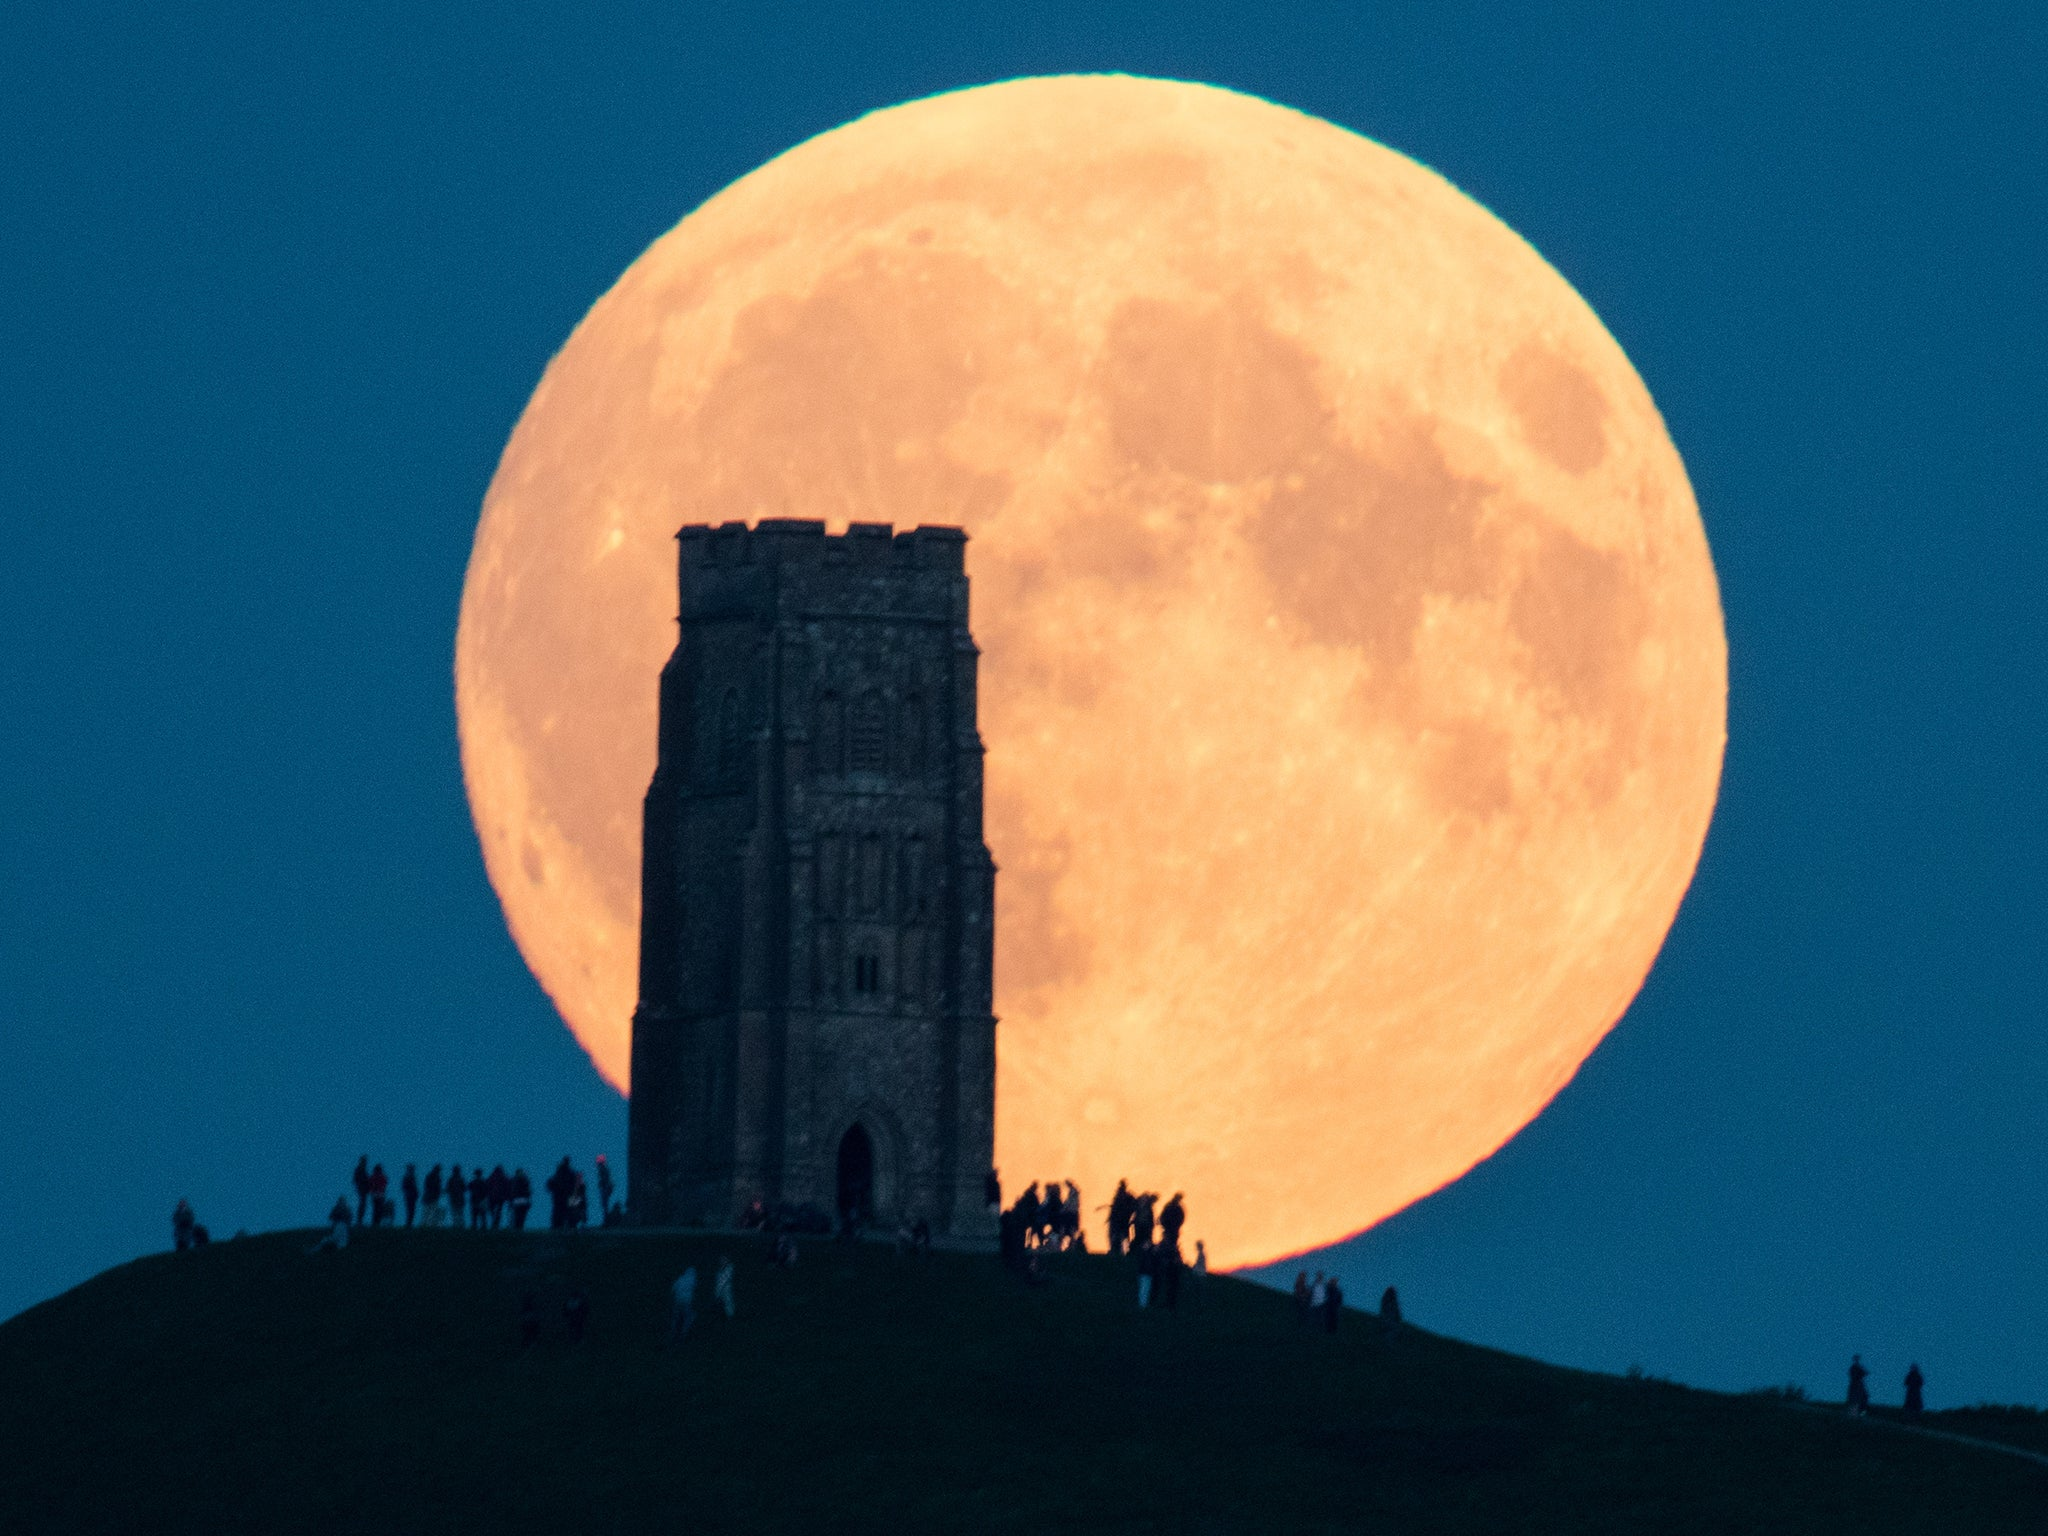 Supermoon to collide with 'hunter's moon' and produce stunning lunar sight